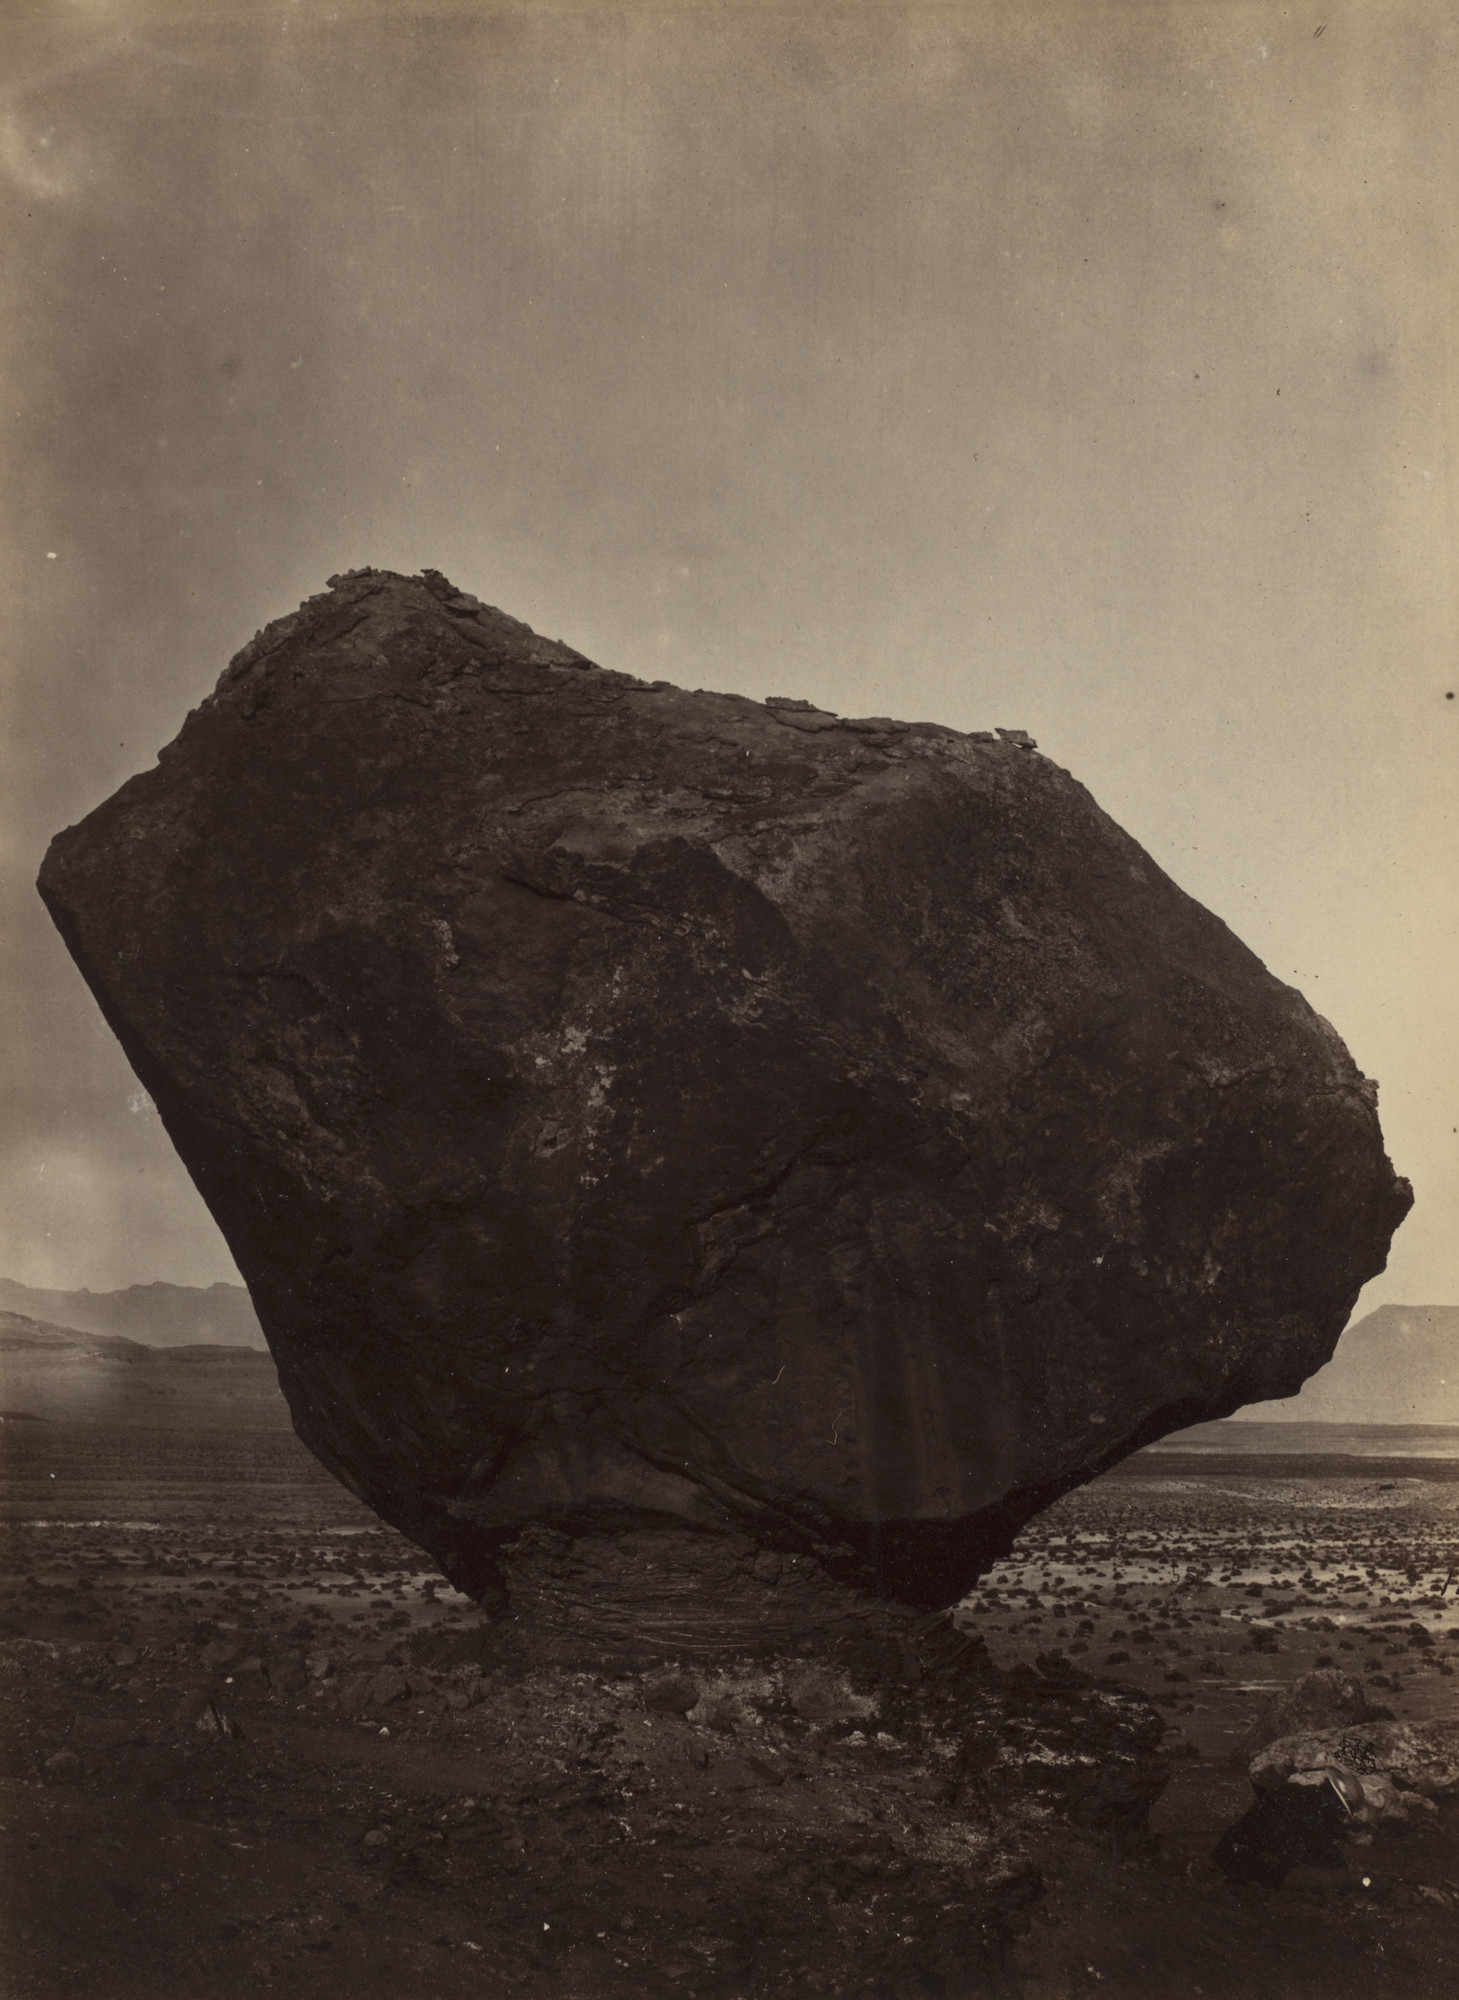 William H. Bell. Perched Rock, Rocker Creek, Arizona. 1872